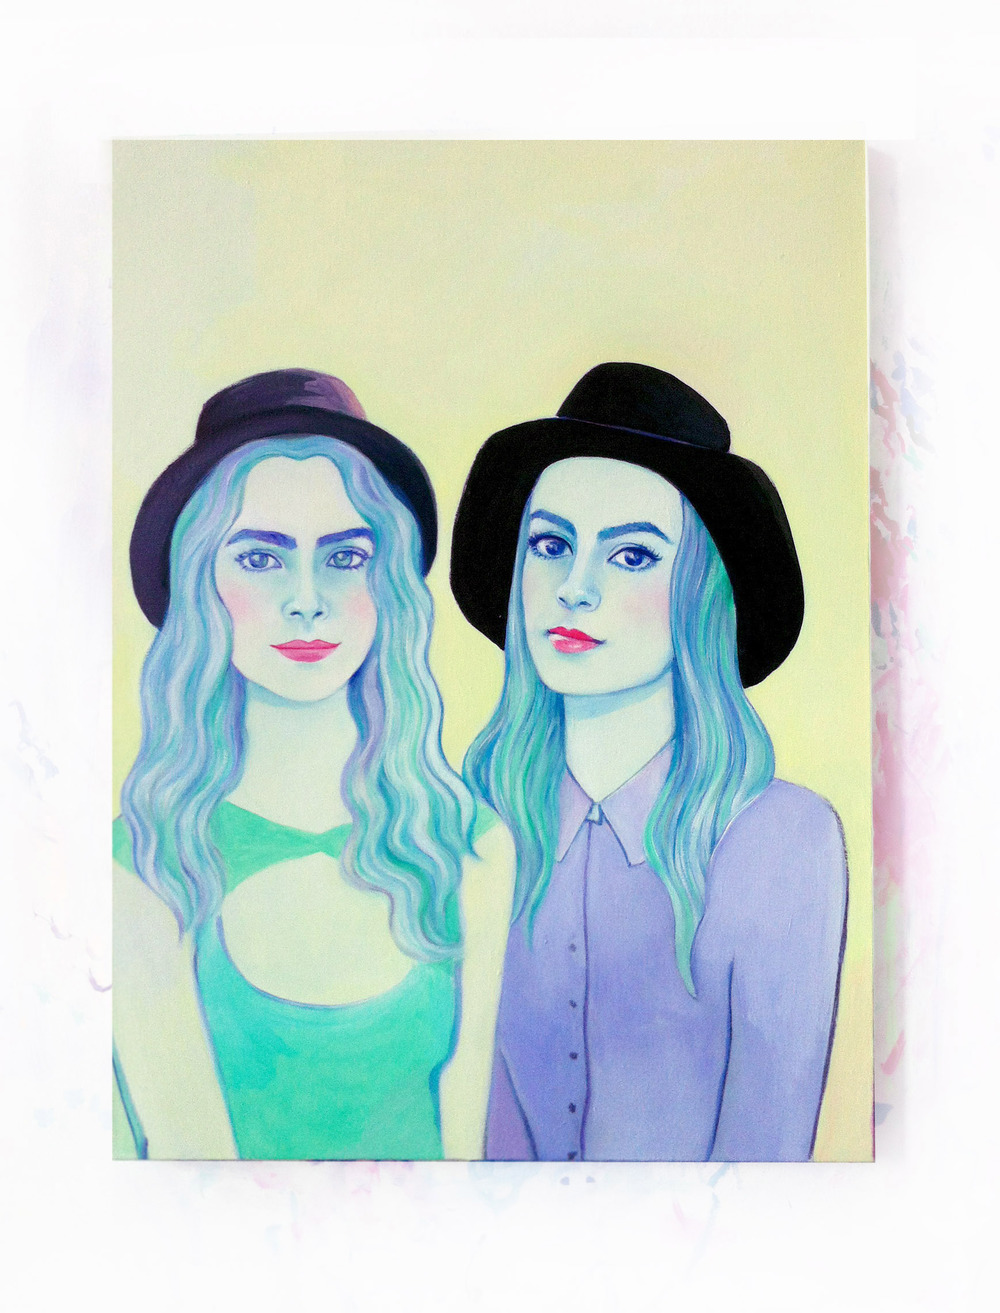 lizzy and carla, oil on canvas, 22 x 24 in. 2014